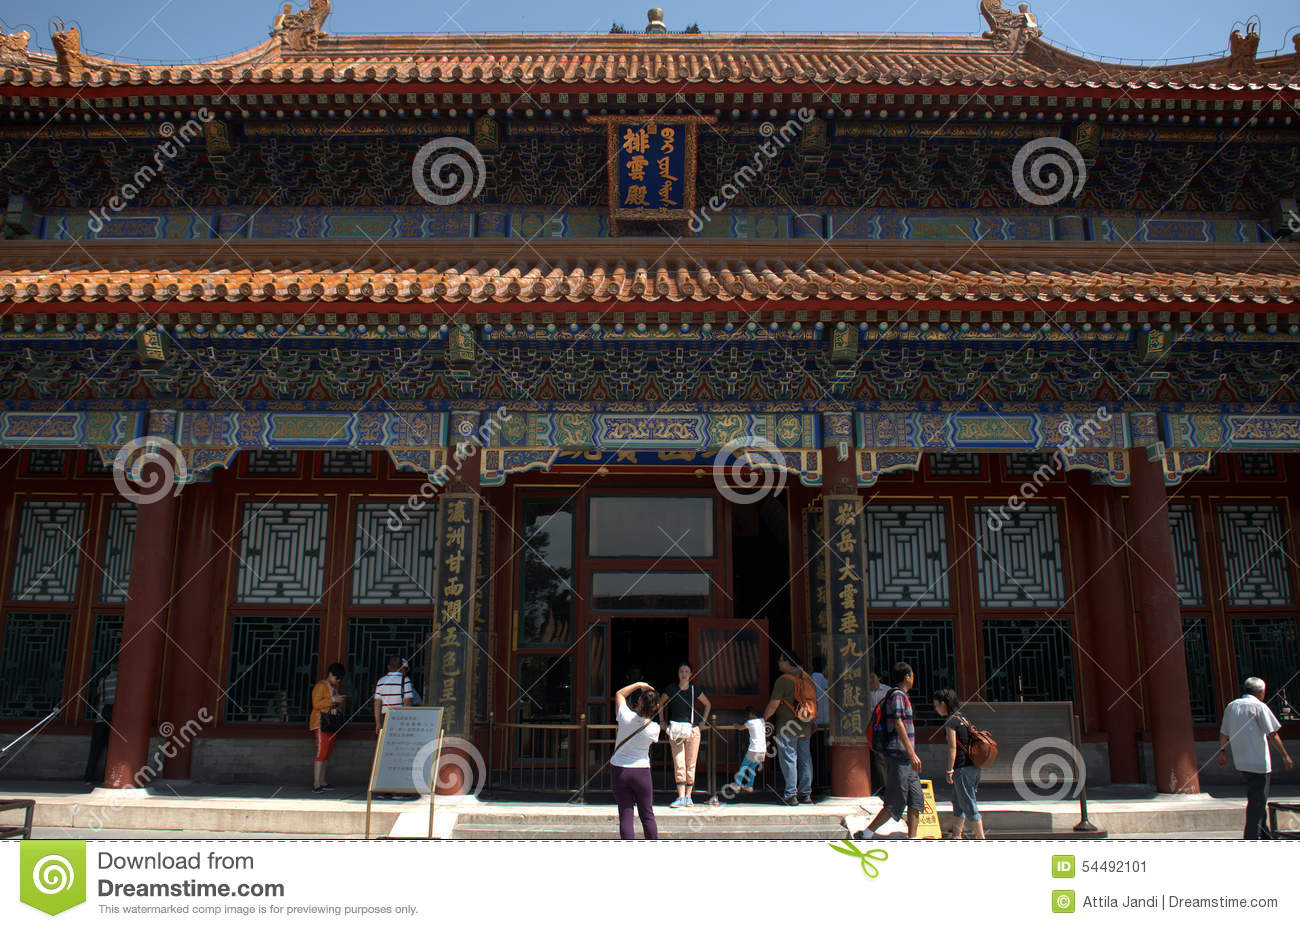 Zhoukoudian Peking Man Site Beijing, The Hall Of Dispelling Clouds In The Summer Palace, Beijing, Chi ...